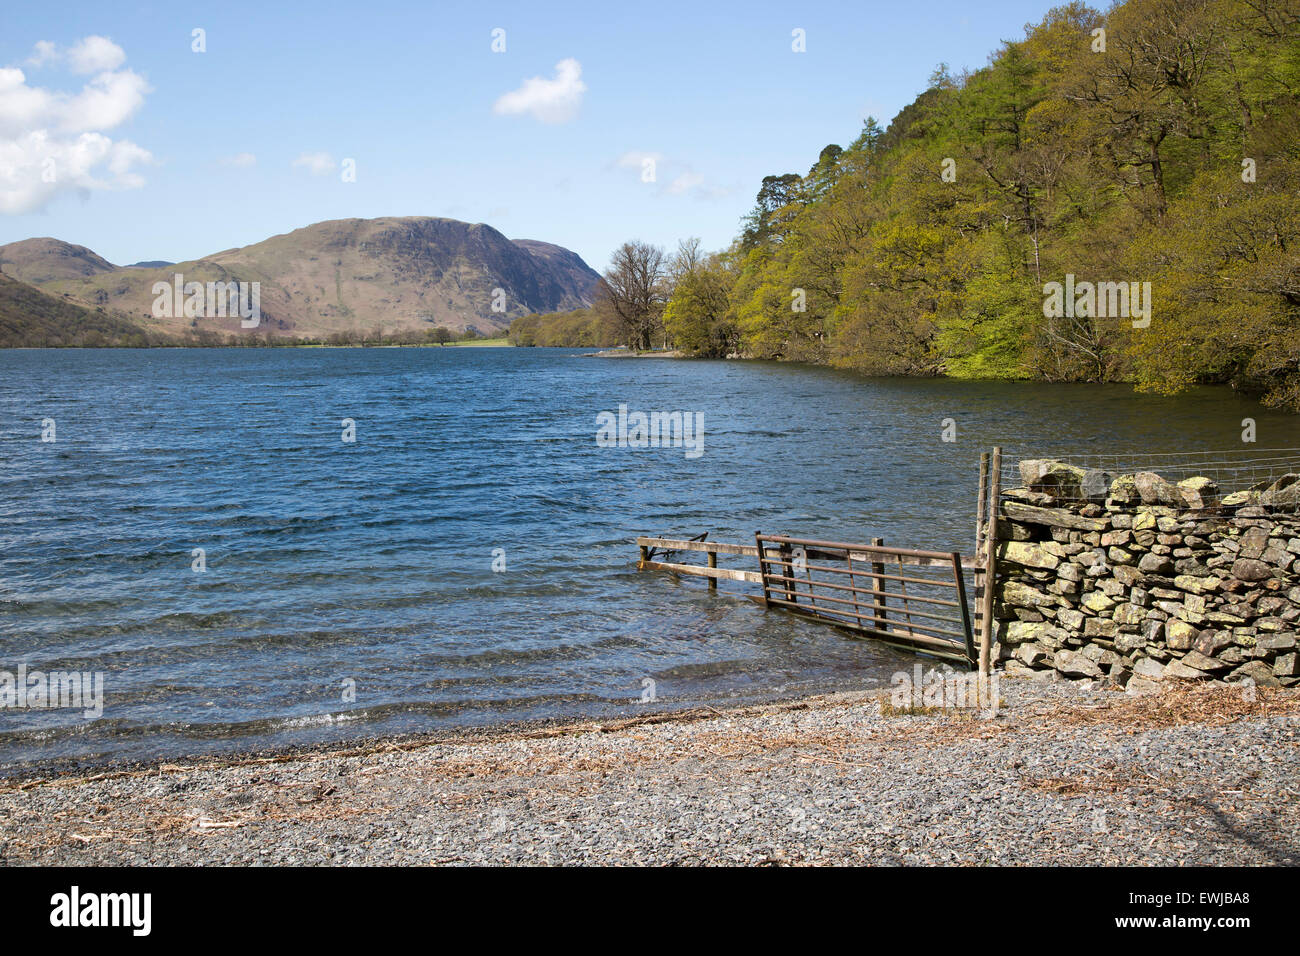 Vue paysage du lac Buttermere, Cumbria, England, UK Photo Stock